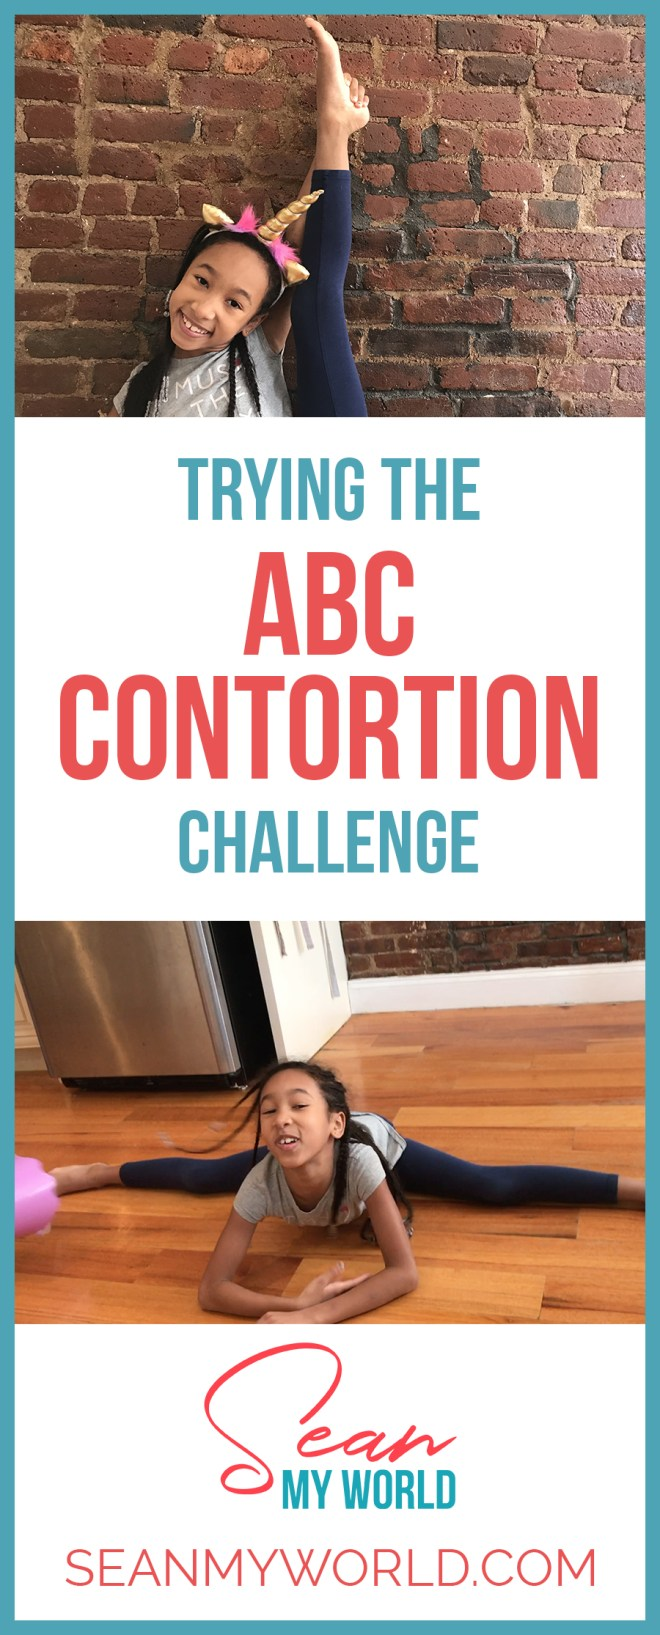 I love watching acro challenges on YouTube, so I decided to try out the ABC gymnastics challenge! Do you know how to do the ABC contortion challenge?